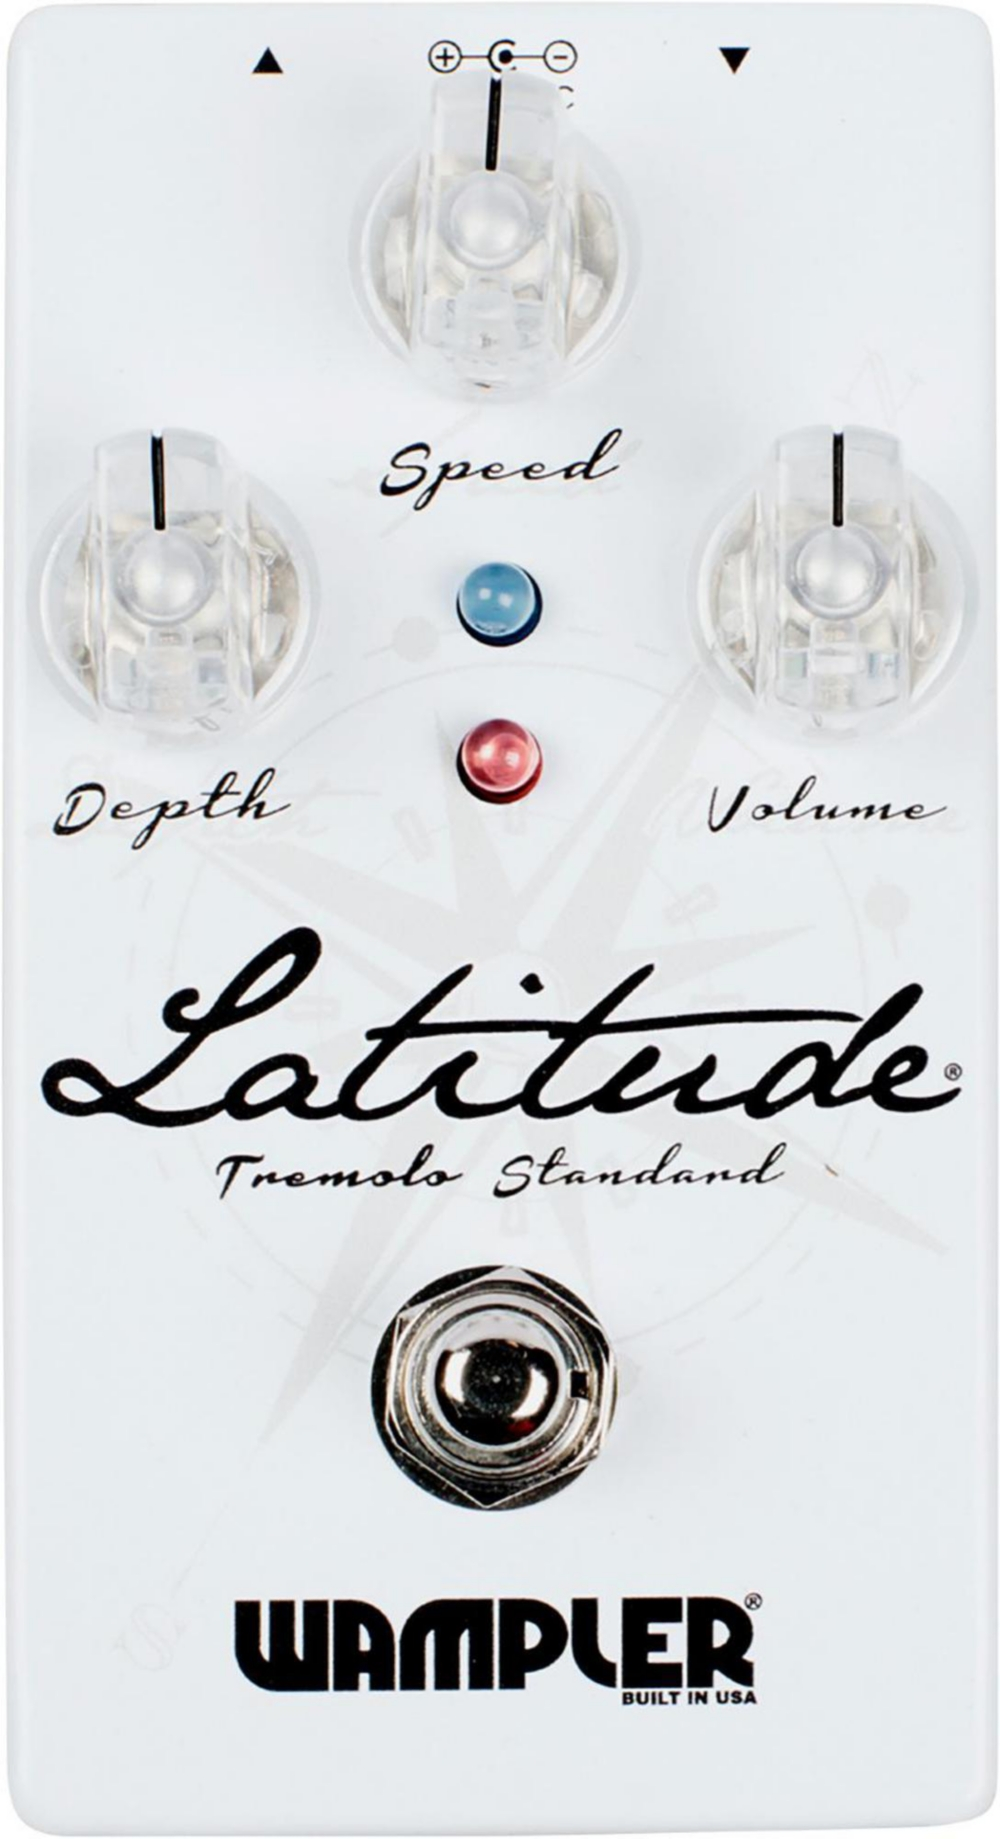 Wampler Latitude Standard Tremolo Pedal by Wampler